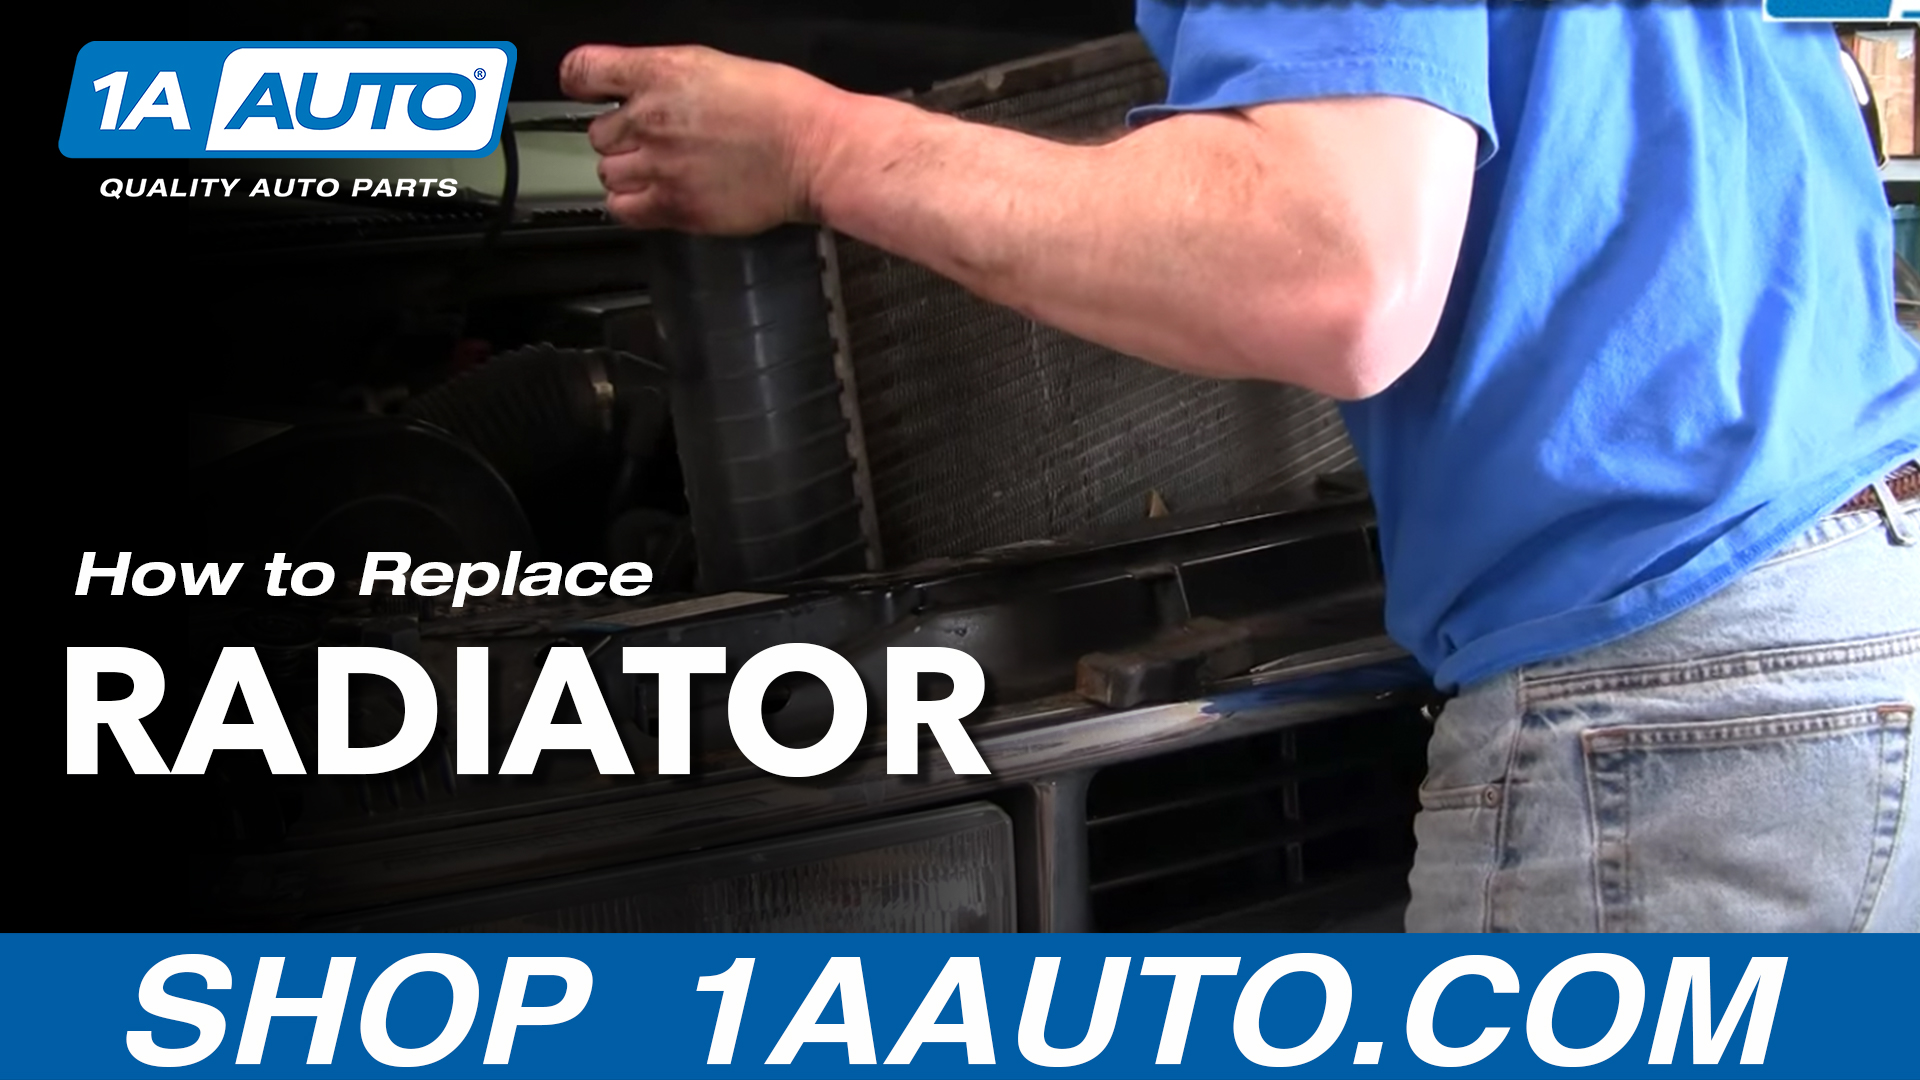 How To Replace Radiator 92-01 Chevy Suburban [PART 1]